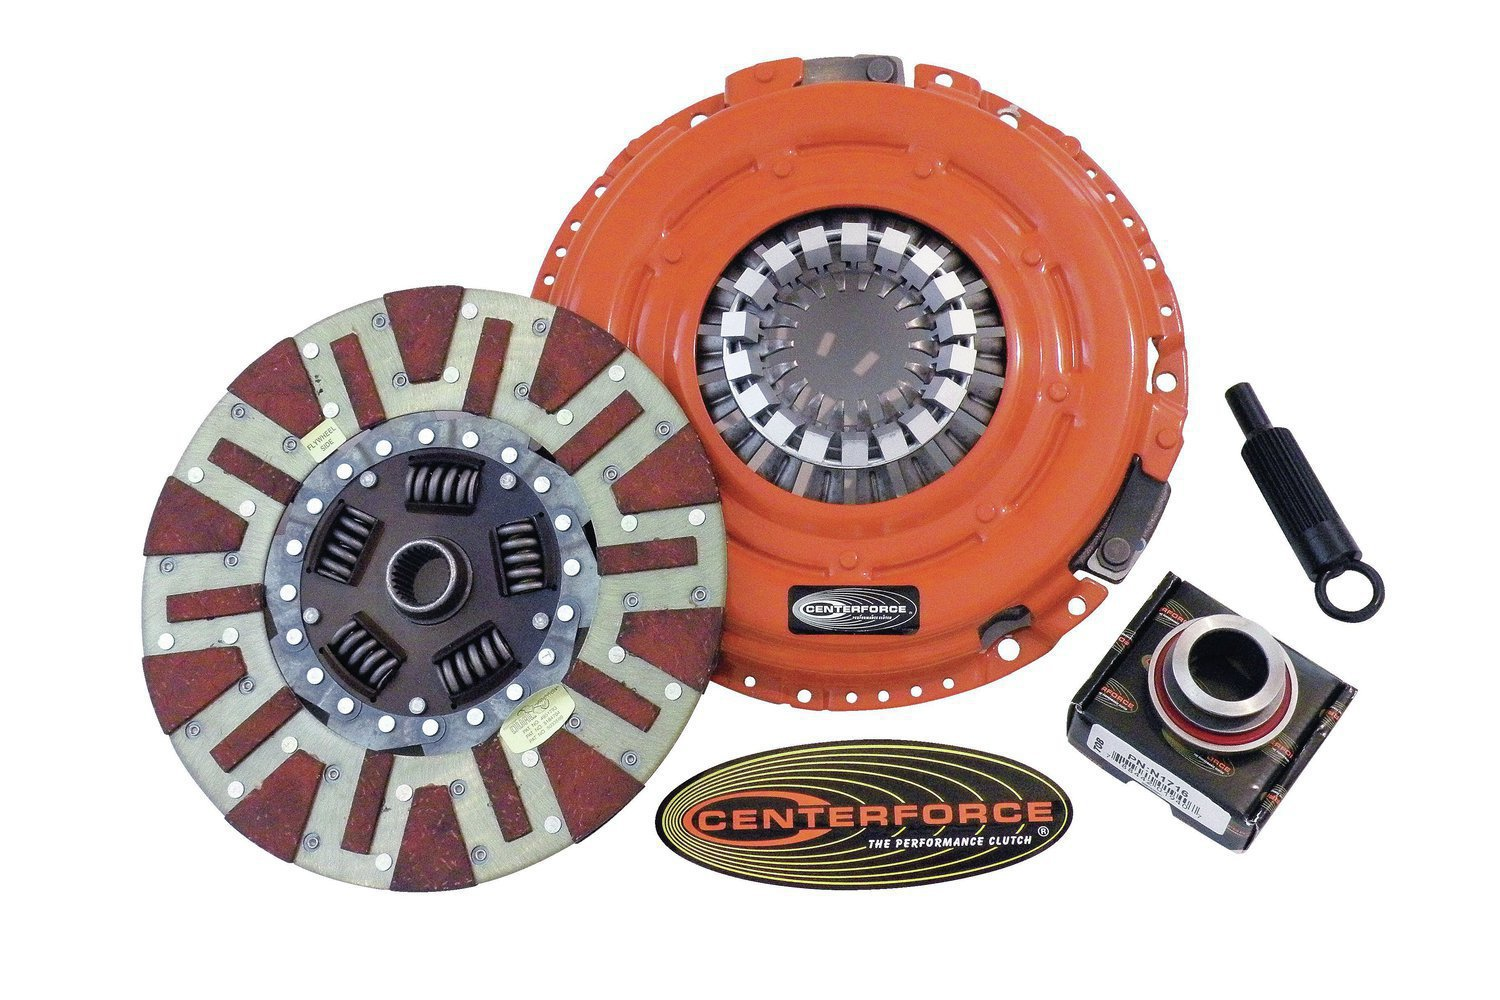 1. These are all the new parts you need to make driving your manual-shift muscle Pontiac a pleasure—the Dual Friction pressure plate and disc, along with the self-centering throwout bearing and alignment tool.